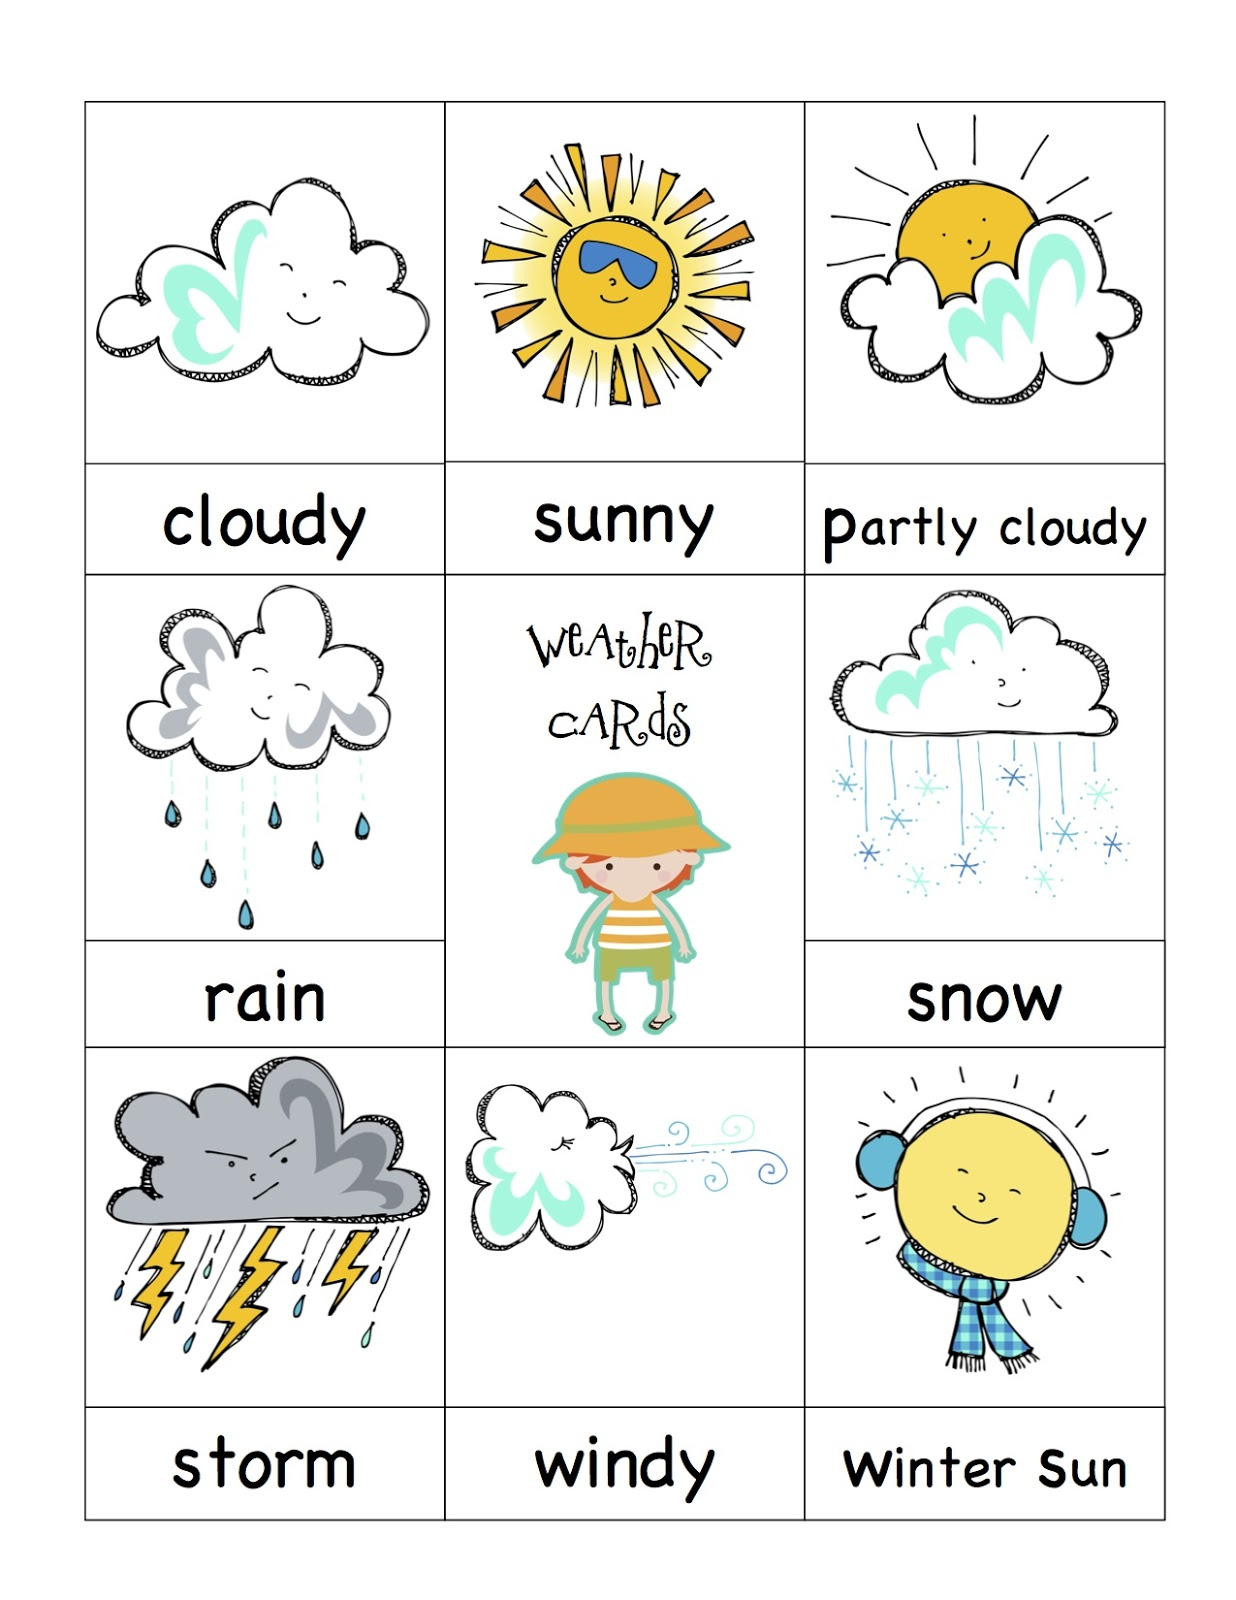 worksheet Weather Worksheets For Kindergarten weather worksheets for kindergarten abitlikethis teachersnotebook com product preschoolprintable friends cards